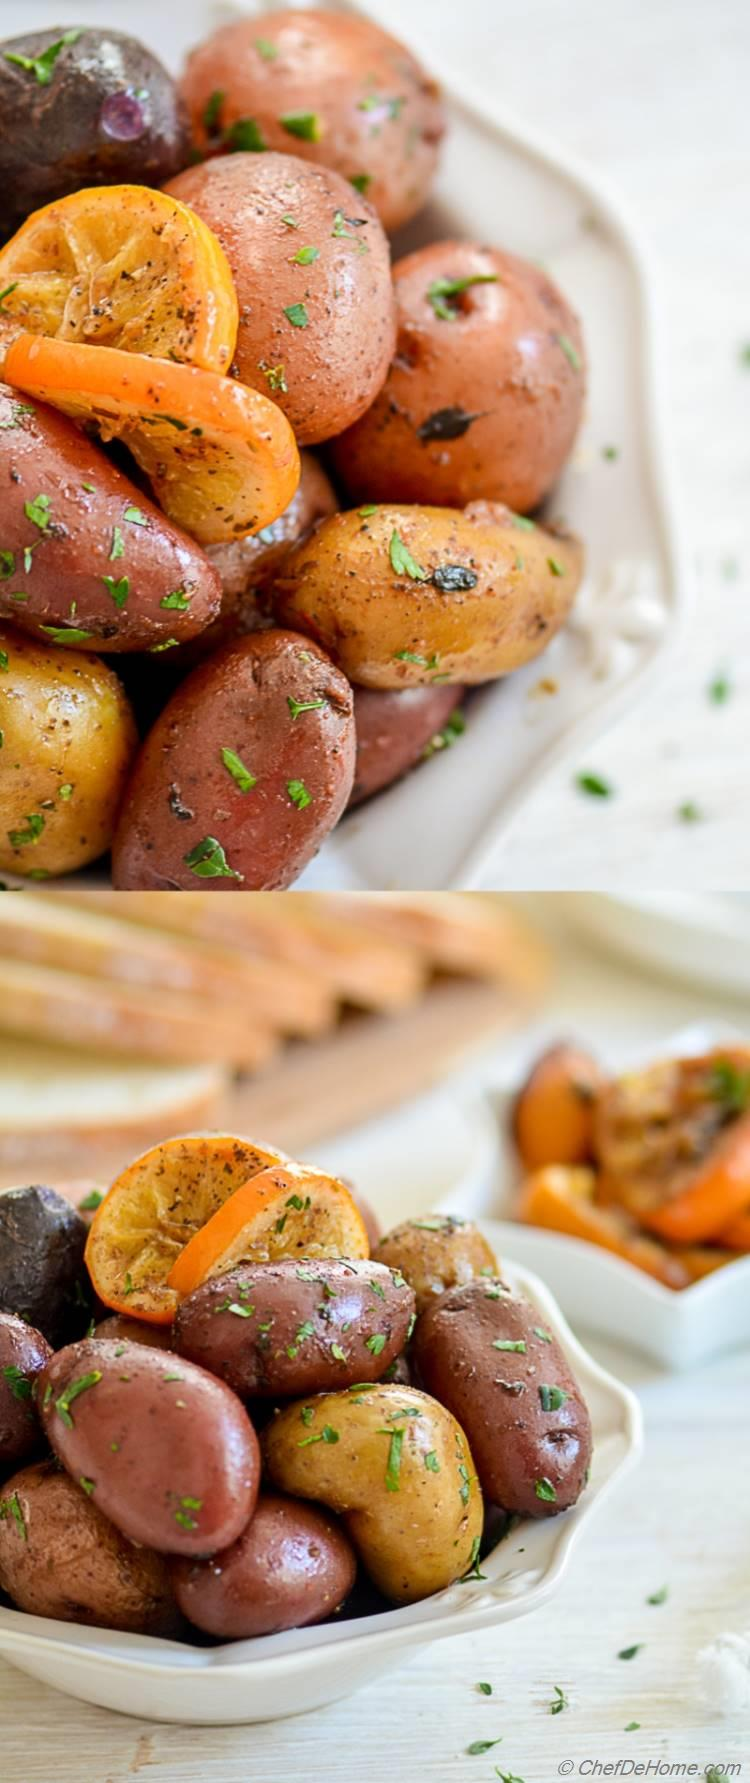 Easy Green Lemon Potatoes in Slow Cooker Can be Veganby just skipping butter | chefdehome.com